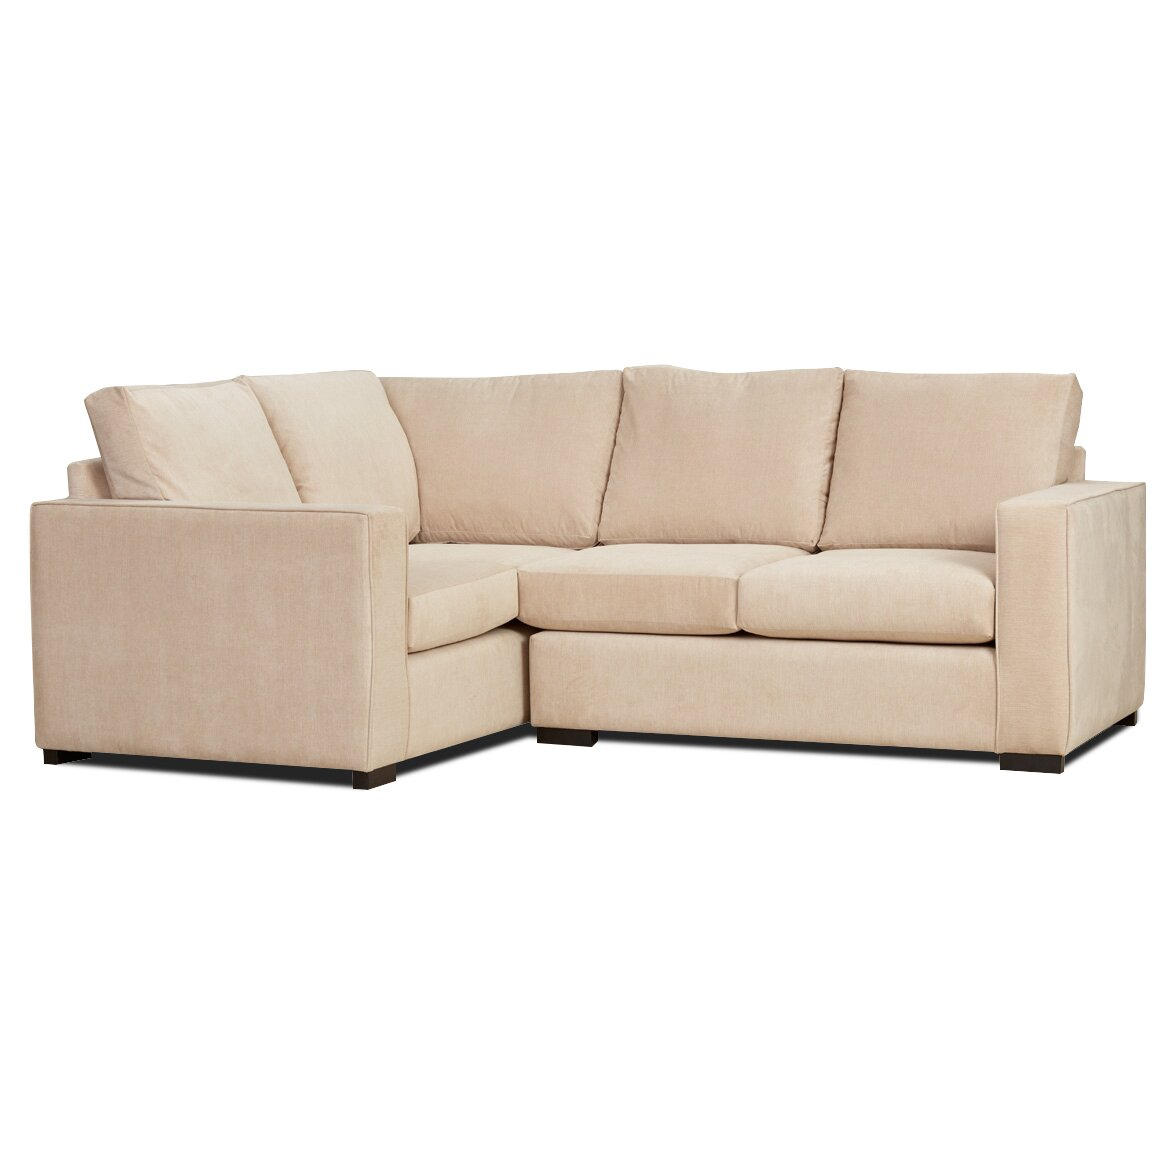 Sofa factory issac corner sofa wayfair uk The sofa company